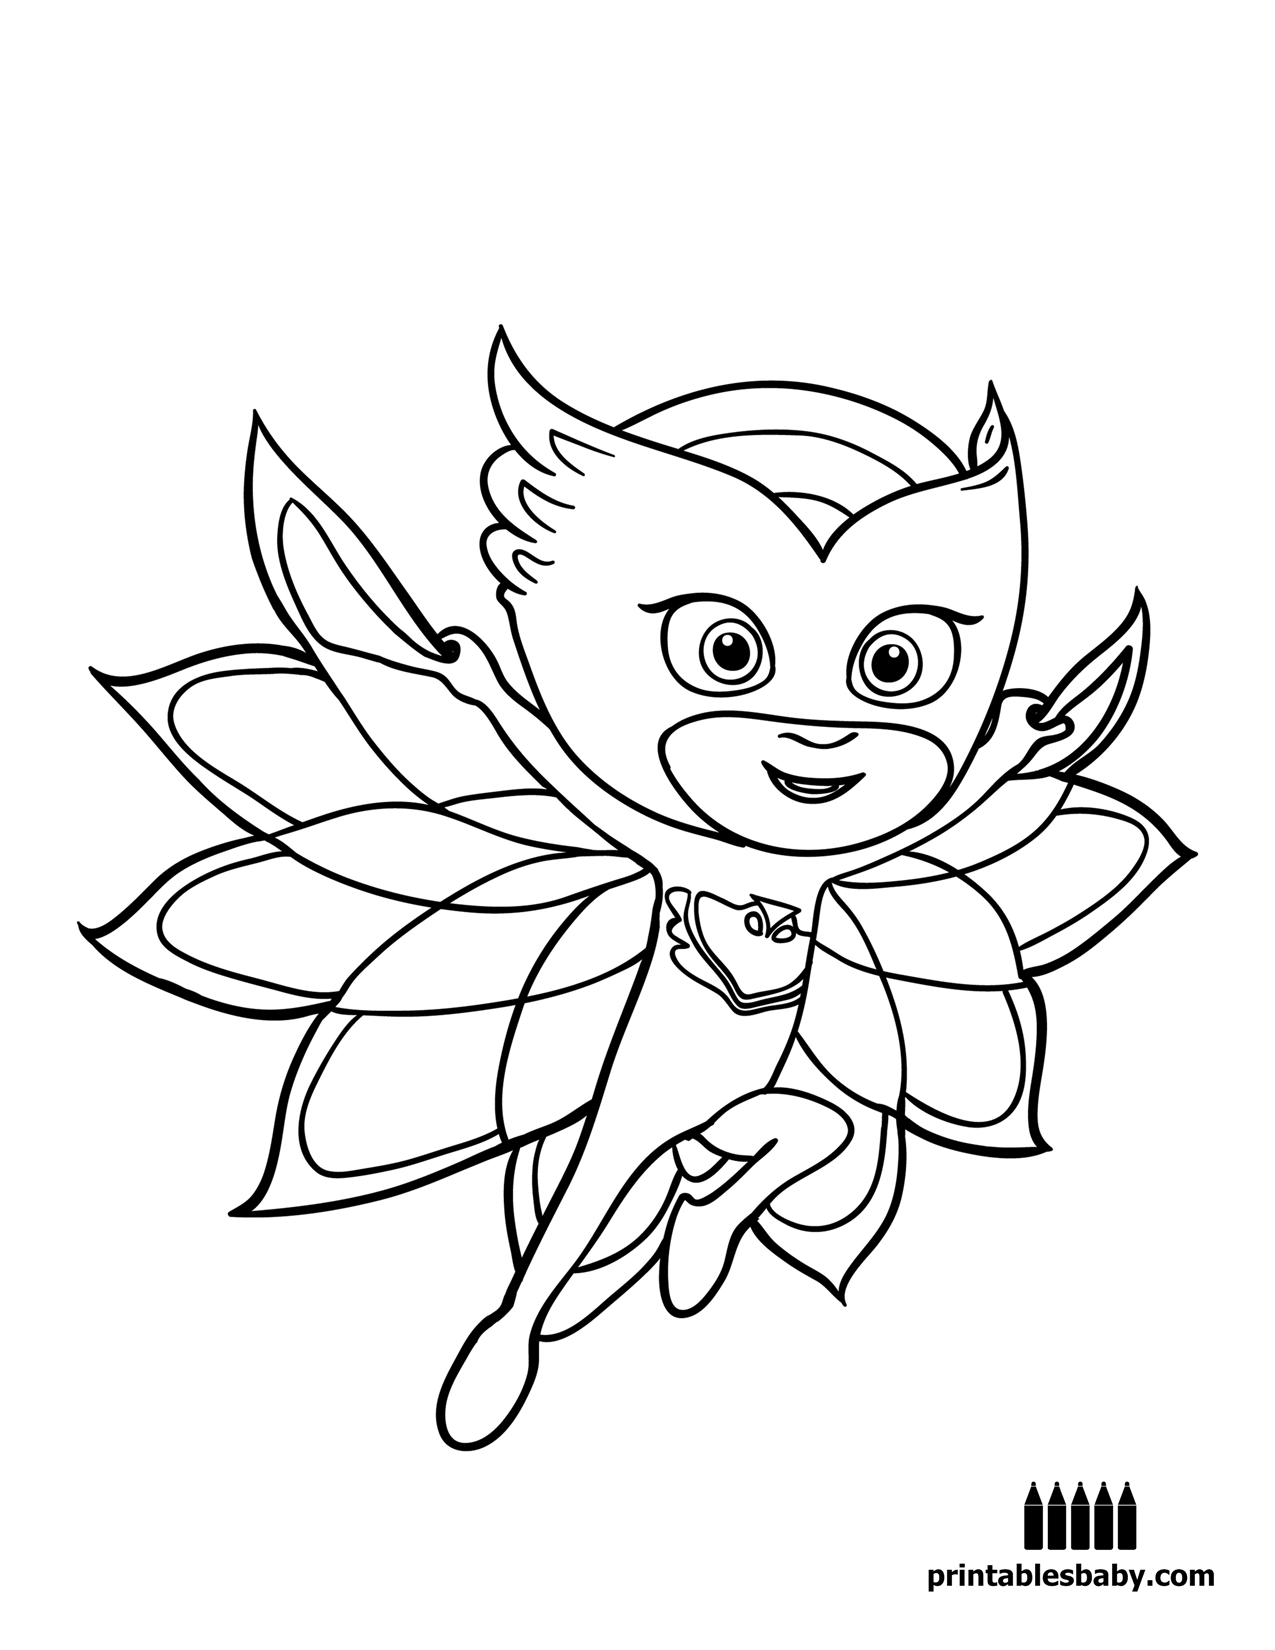 Free coloring pages pj masks - Pj Masks Printables Baby Free Cartoon Coloring Pages